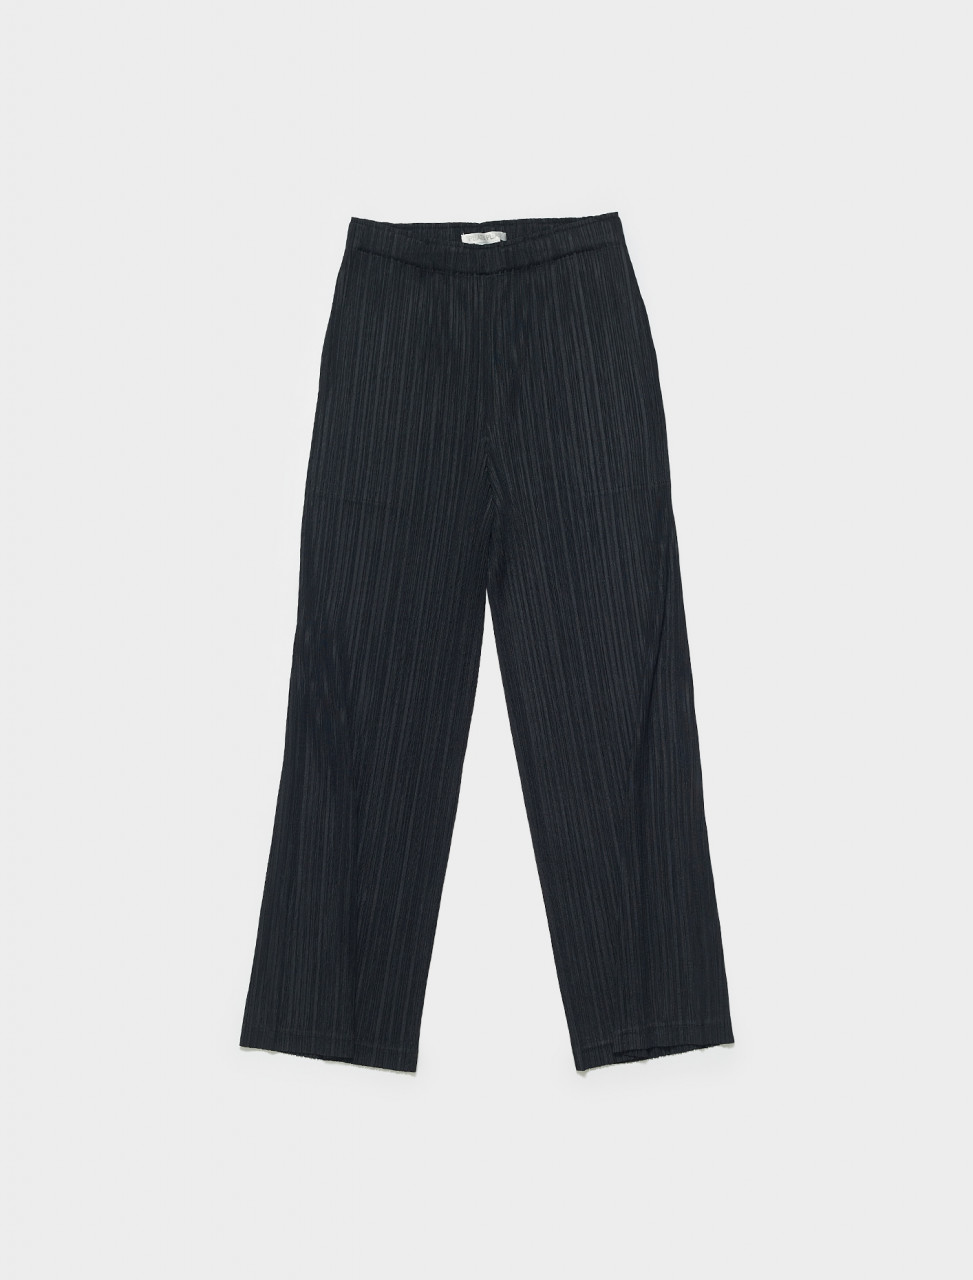 PP16JF412-15 PLEATS PLEASE ISSEY MIYAKE TROUSER BLACK